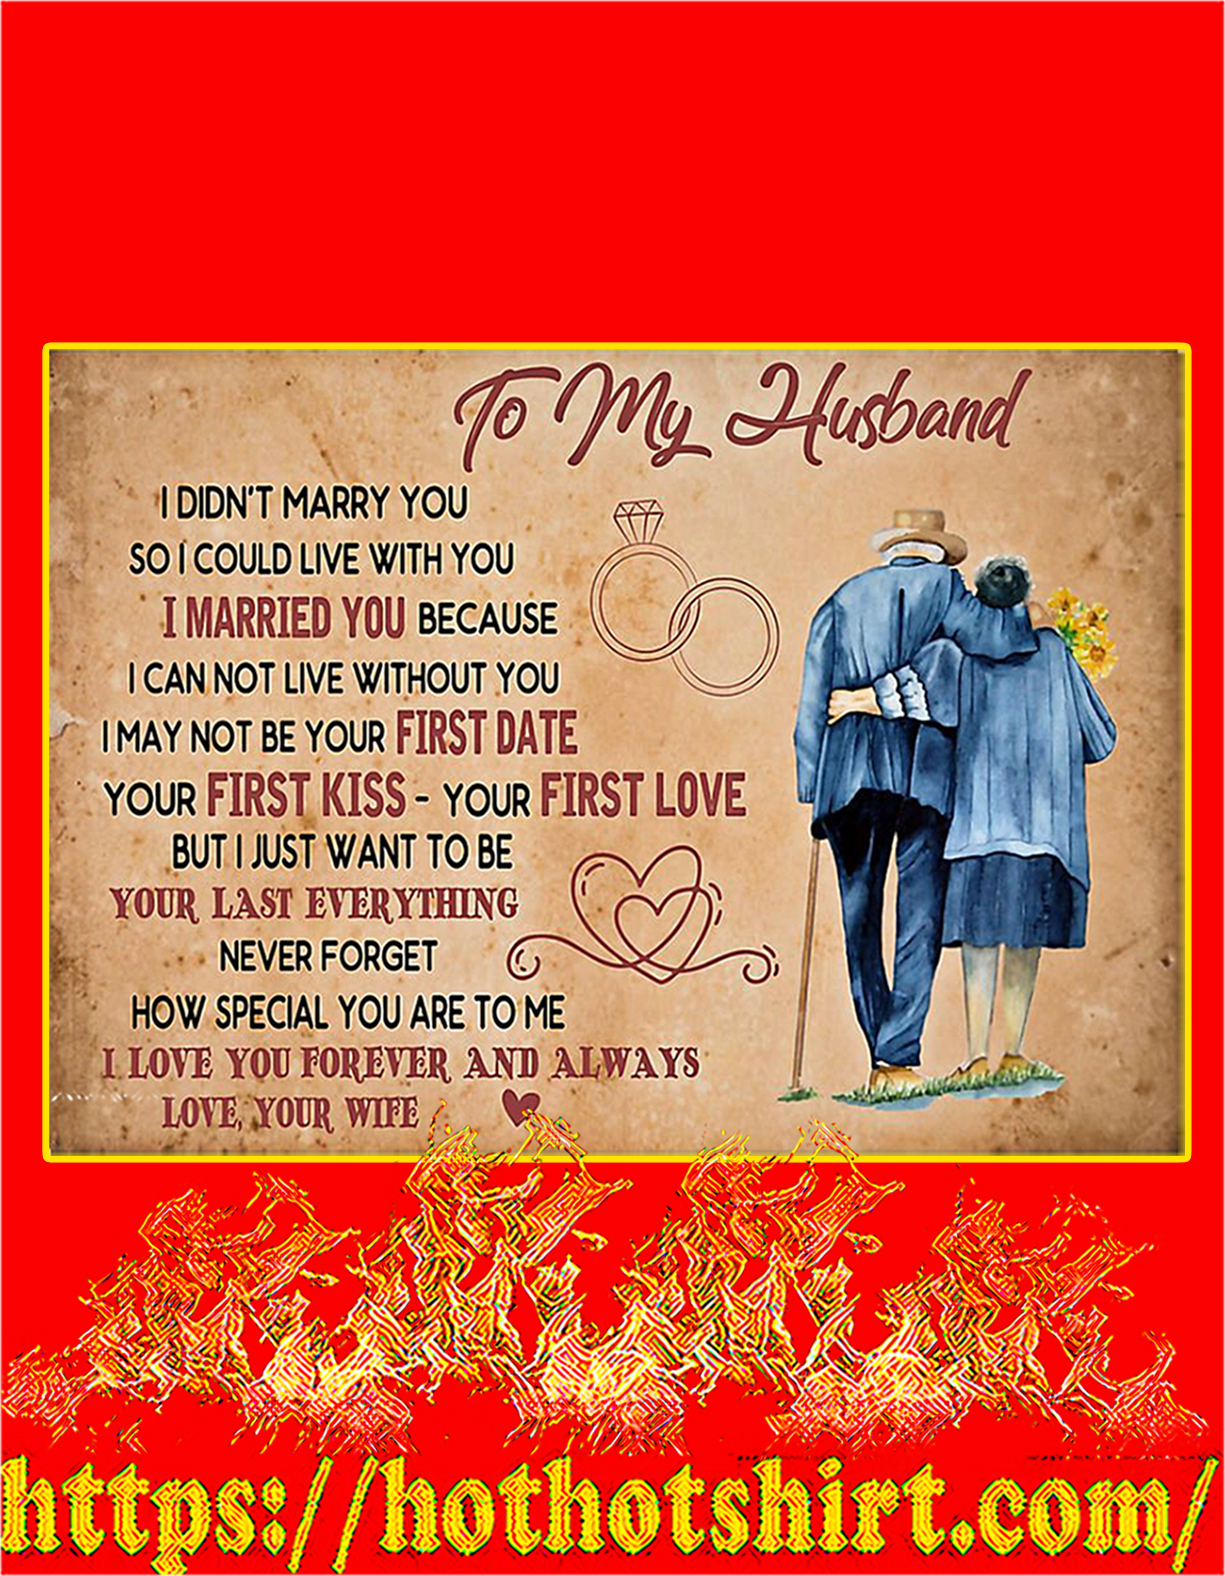 To my husband I didn't marry you poster - A4